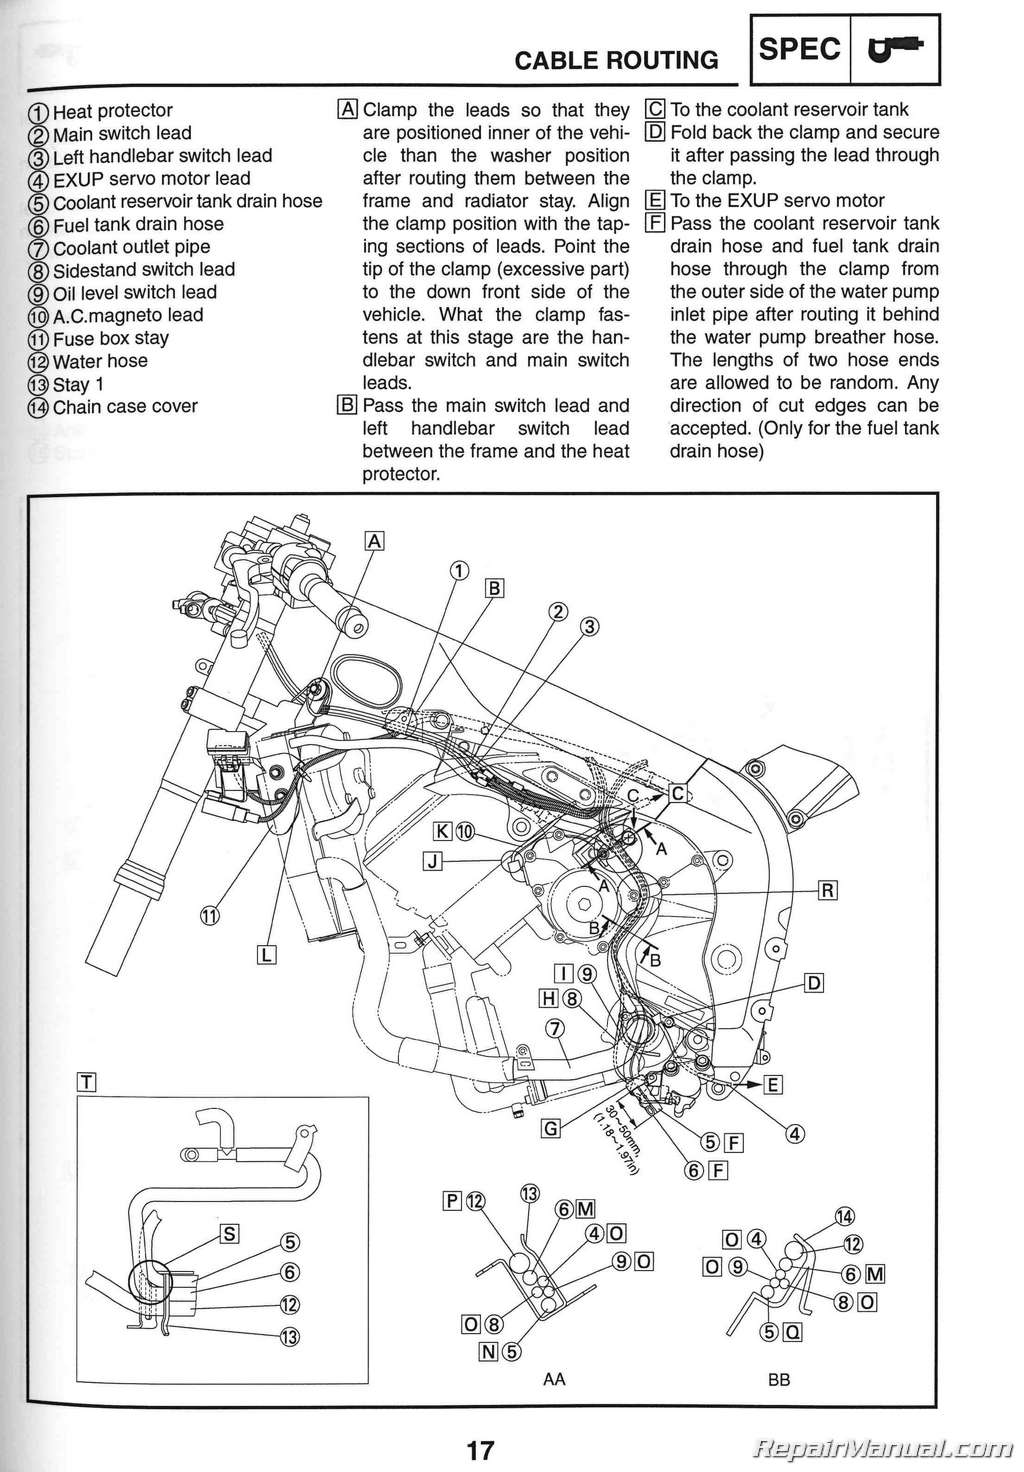 2006 R1 Wiring Diagram Great Design Of Yamaha Yzf Motorcycle Service Manual Headlight